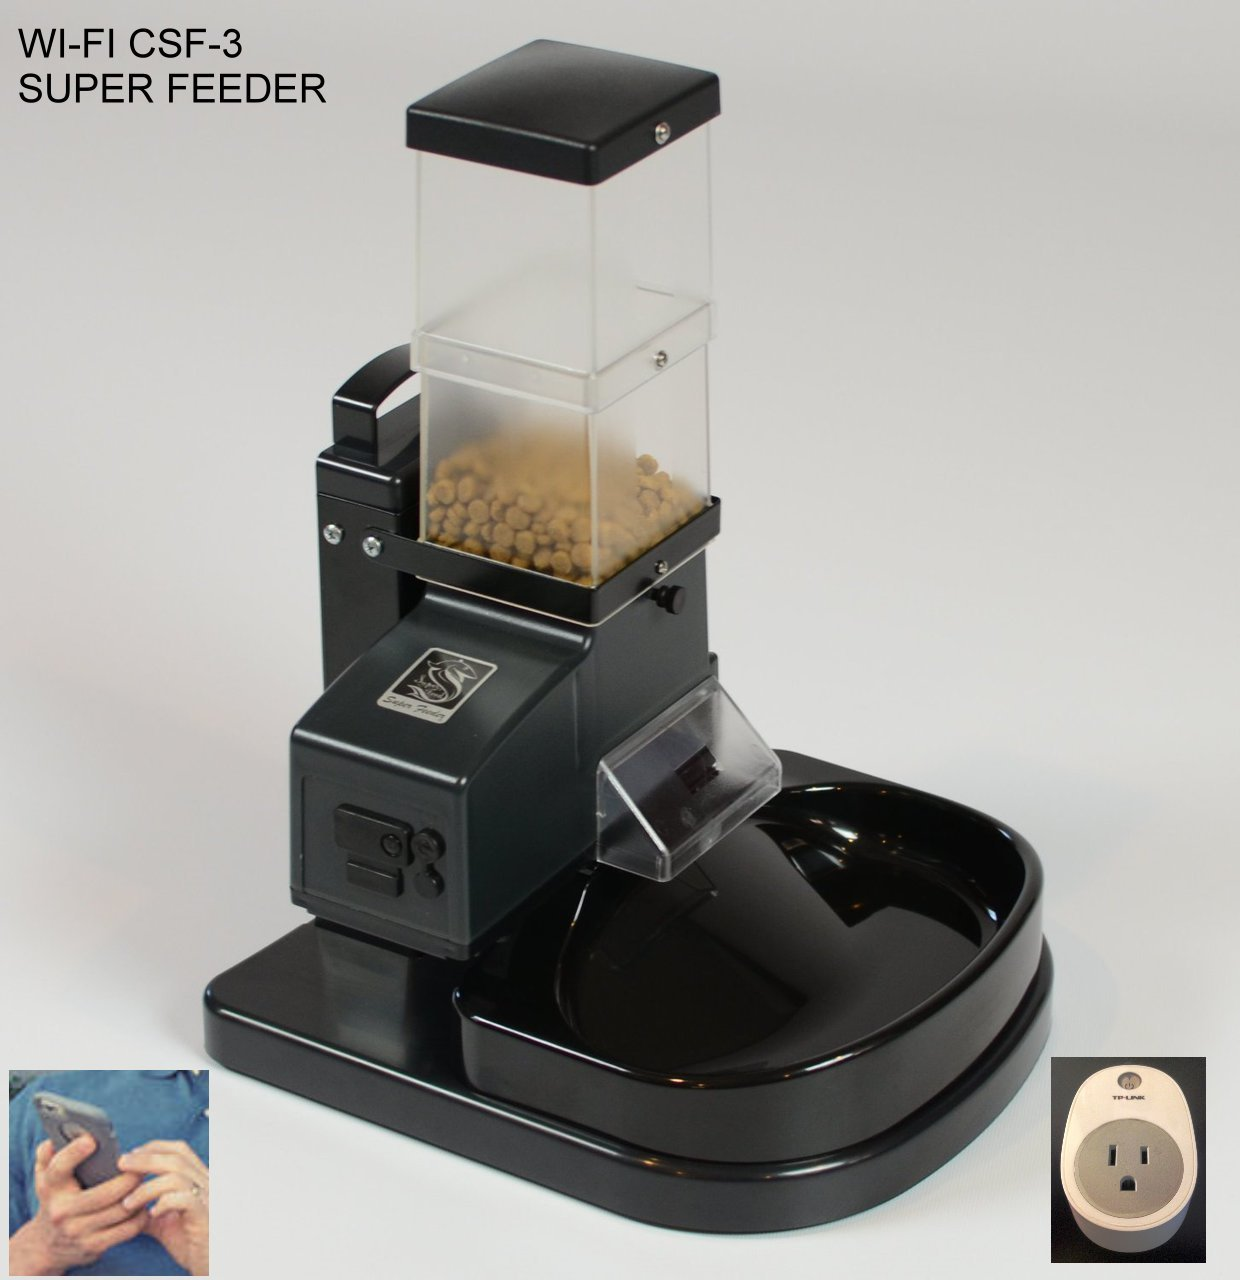 Automatic Cat Super Feeder CSF-3 with Wi-Fi Plug for Alexa, Iphone, etc... on sale